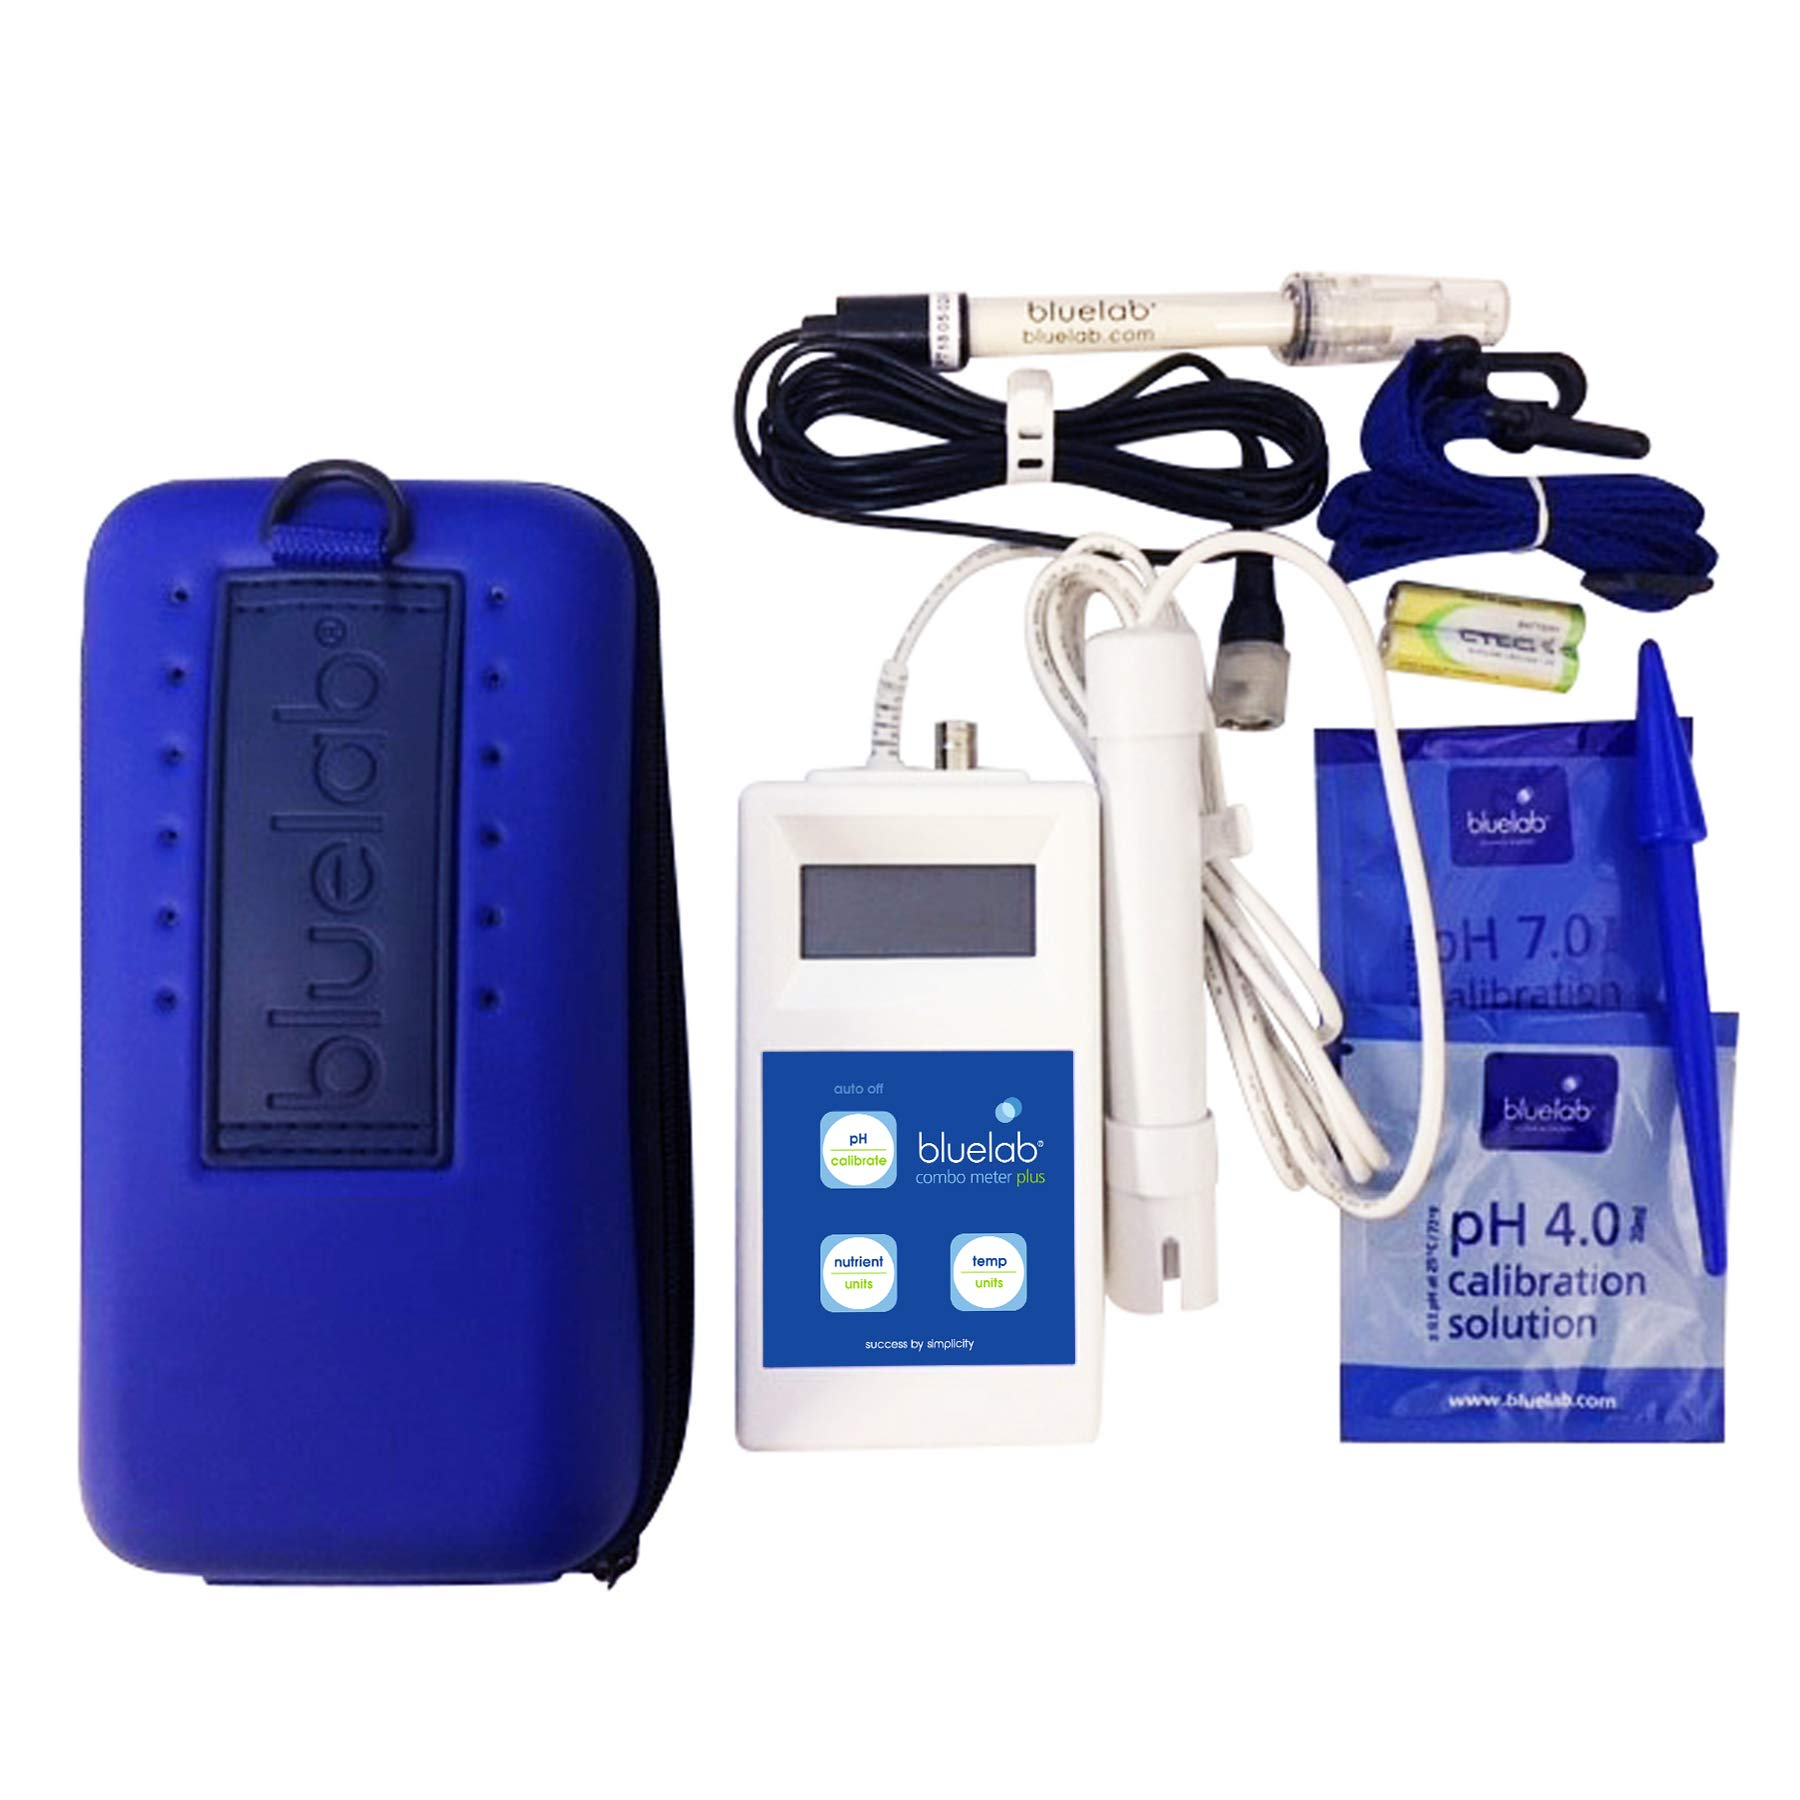 Bluelab Combo Meter Plus - Handheld Digital Hydroponic Nutrient and pH Meter for Measuring pH Levels, Conductivity & Temperature in Soil & Plants - Accurate pH Measurements - Bonus Carry Case Included by Bluelab (Image #9)